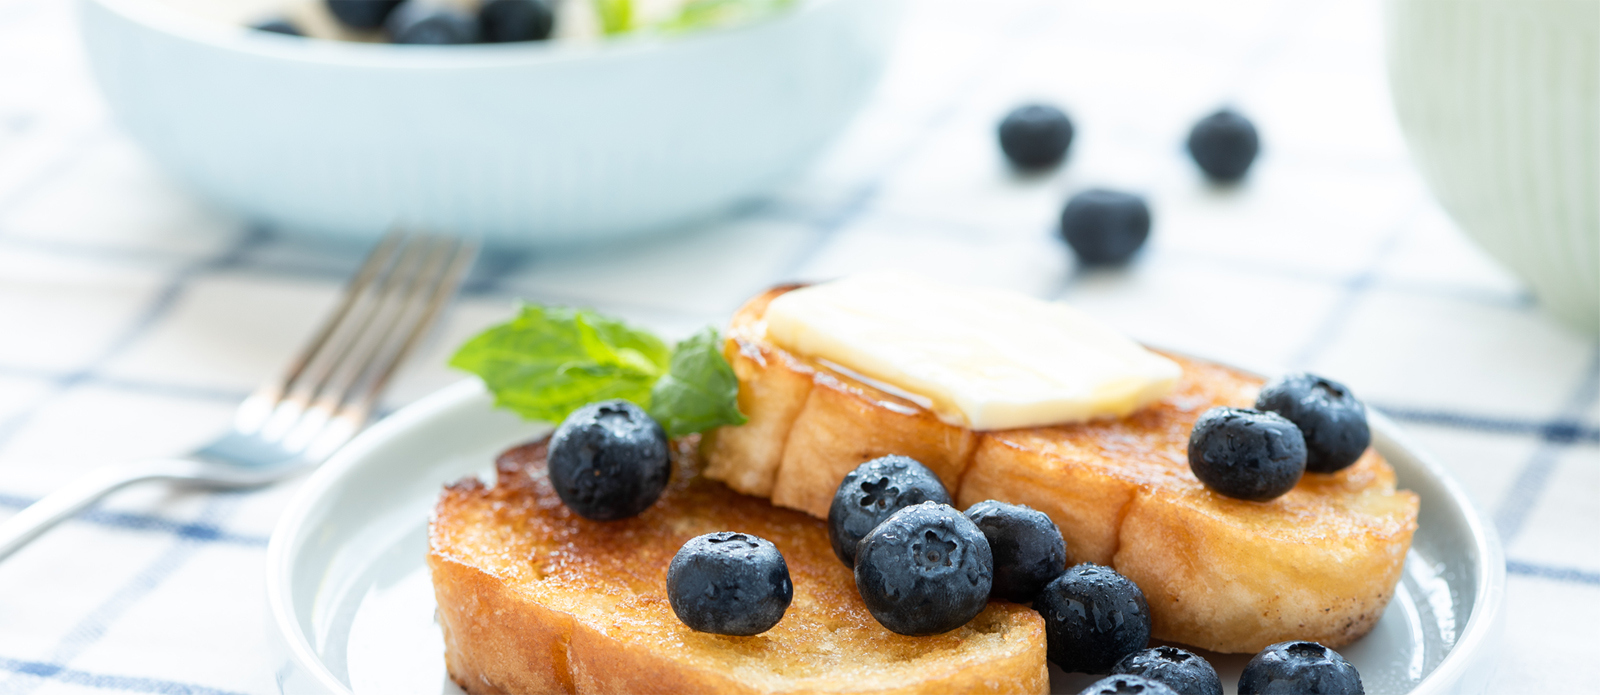 plate of toast with butter and blueberries